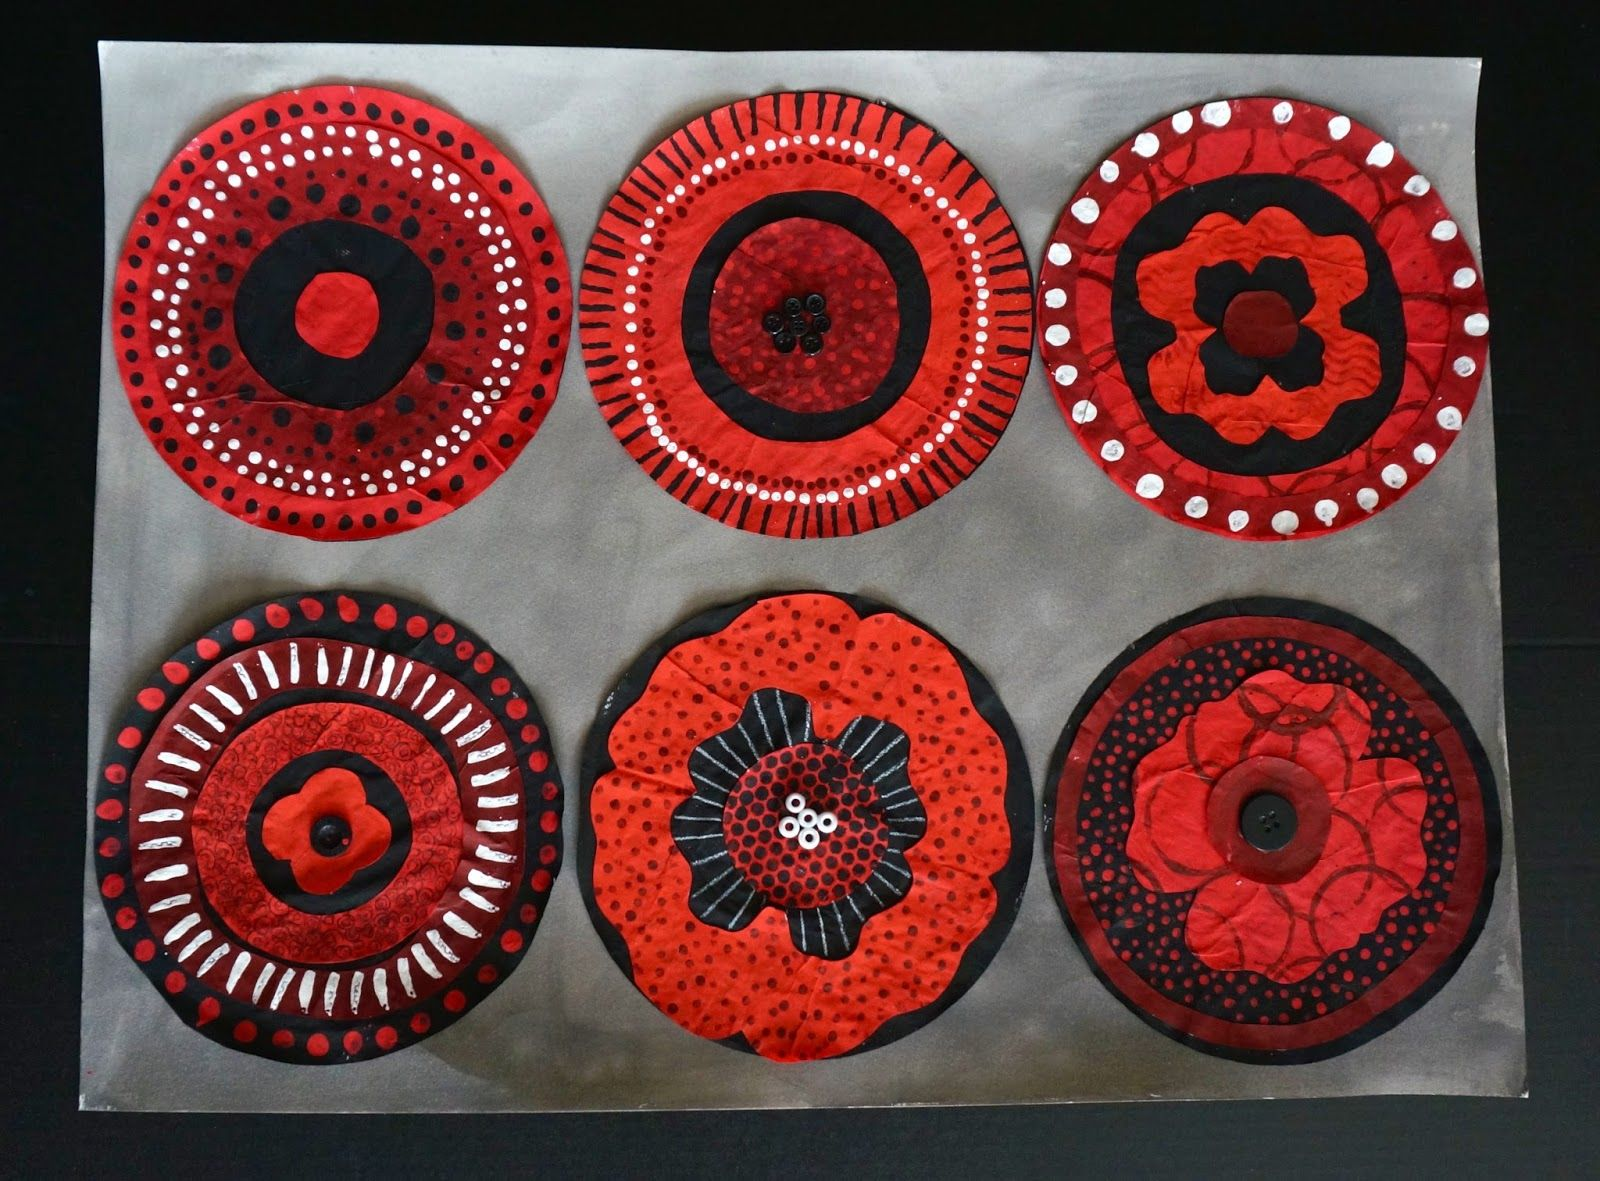 This Year S Remembrance Day Art Project Is The Result Of 2 Main Inspirations Project Runway S